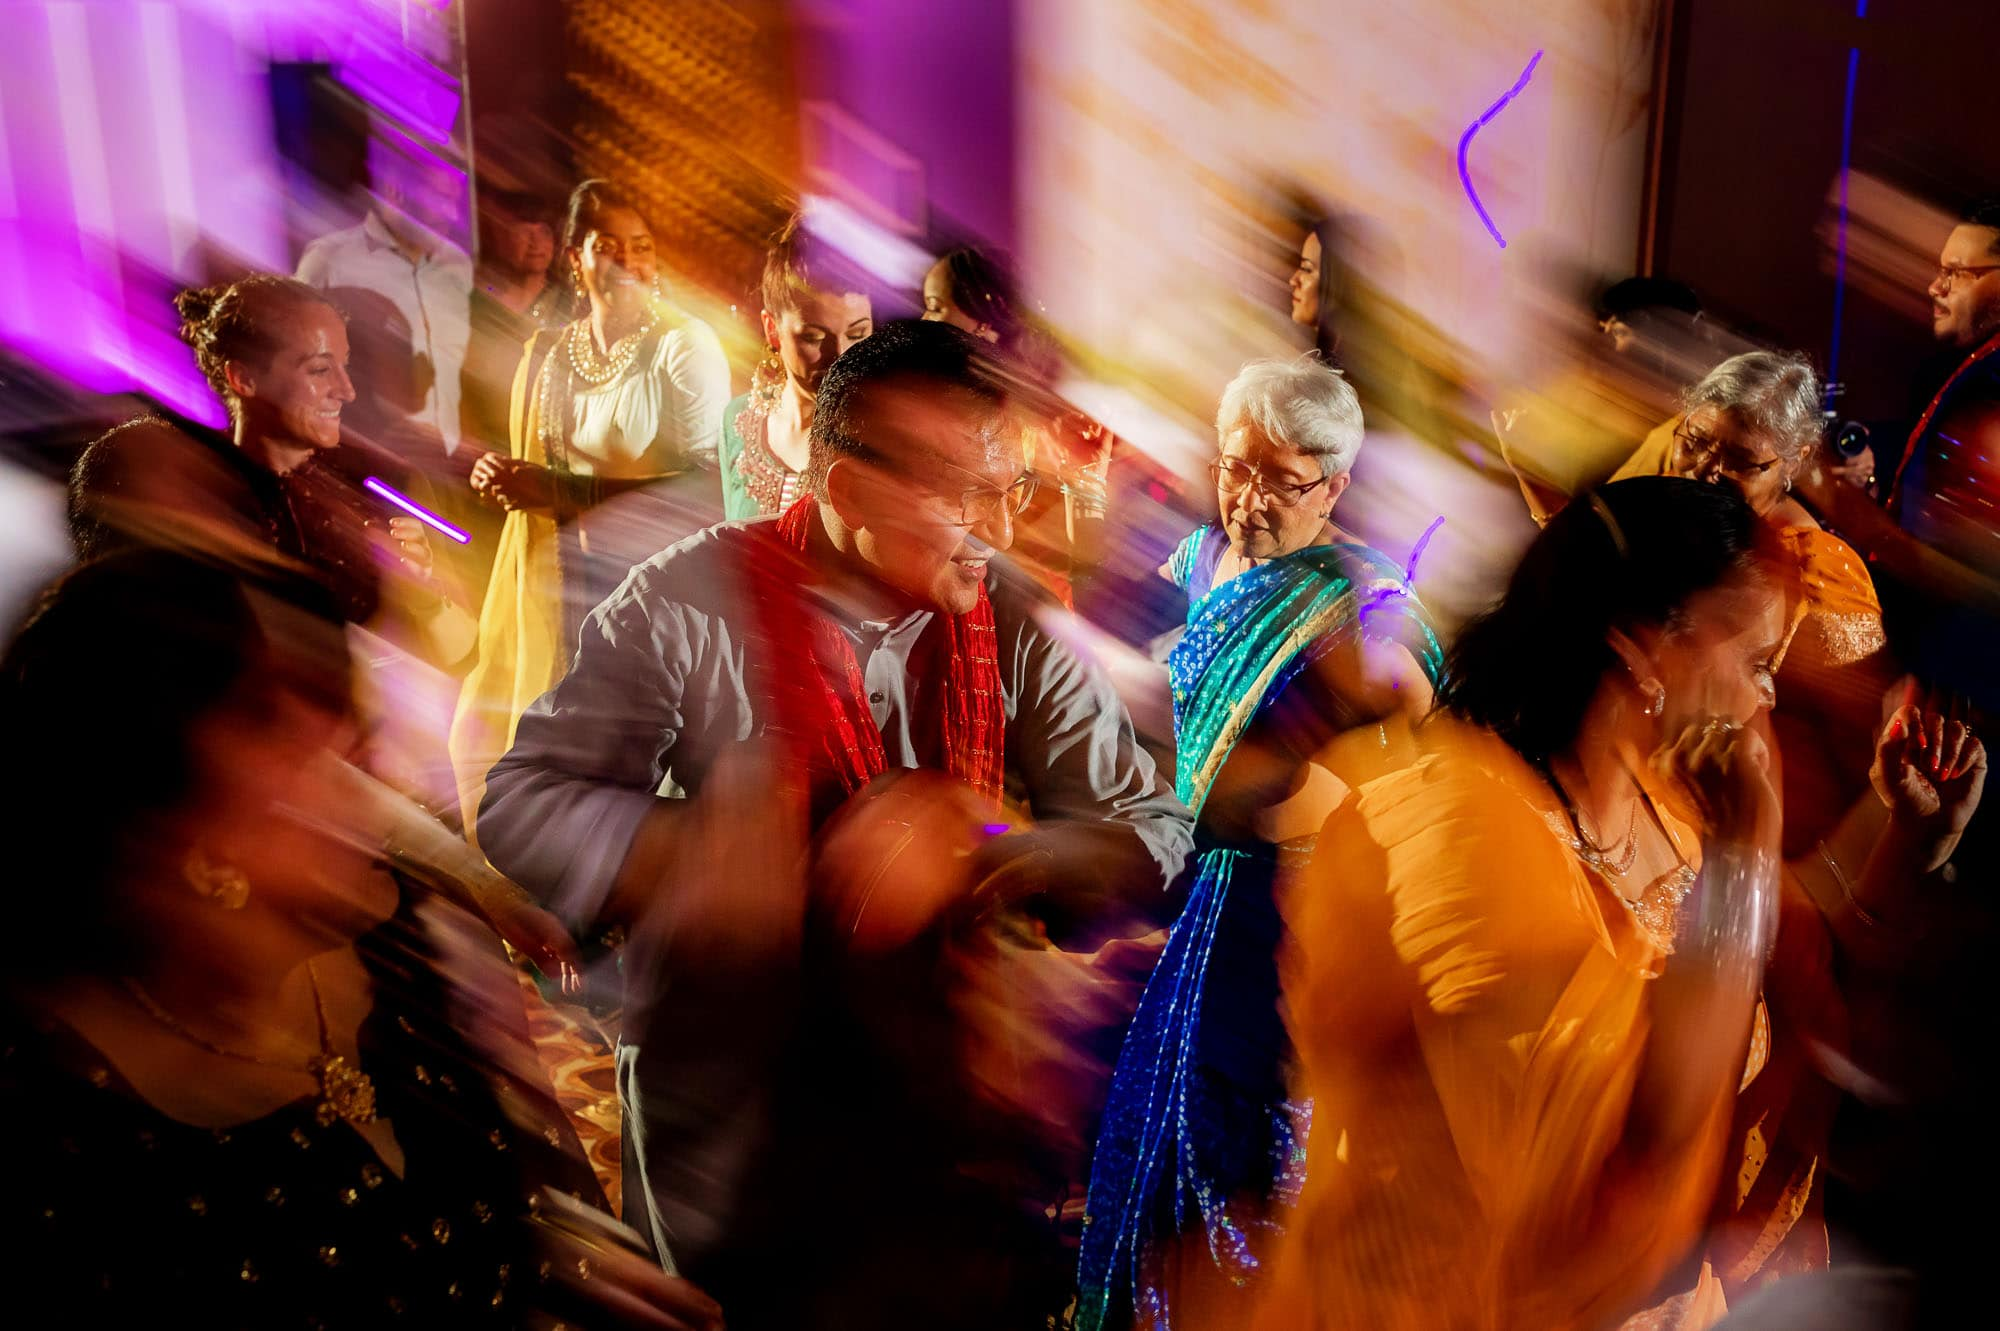 More fun and dancing the second night at this traditional Hindu Muslim wedding!